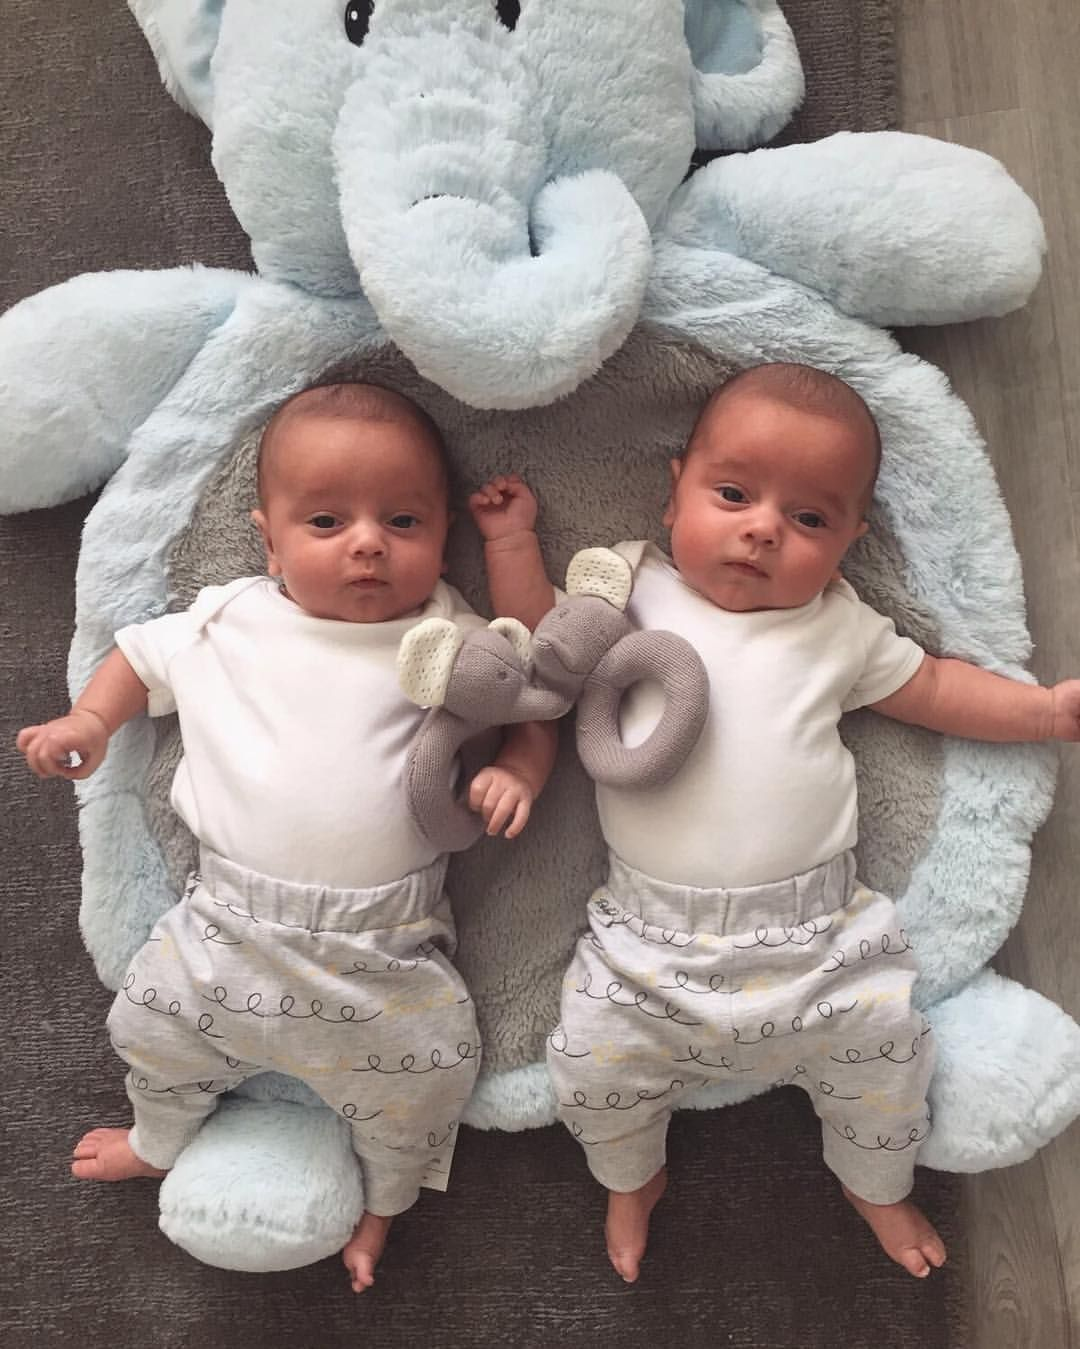 Pin by Suanetteg on Family  | Baby boy gifts, Cute ...